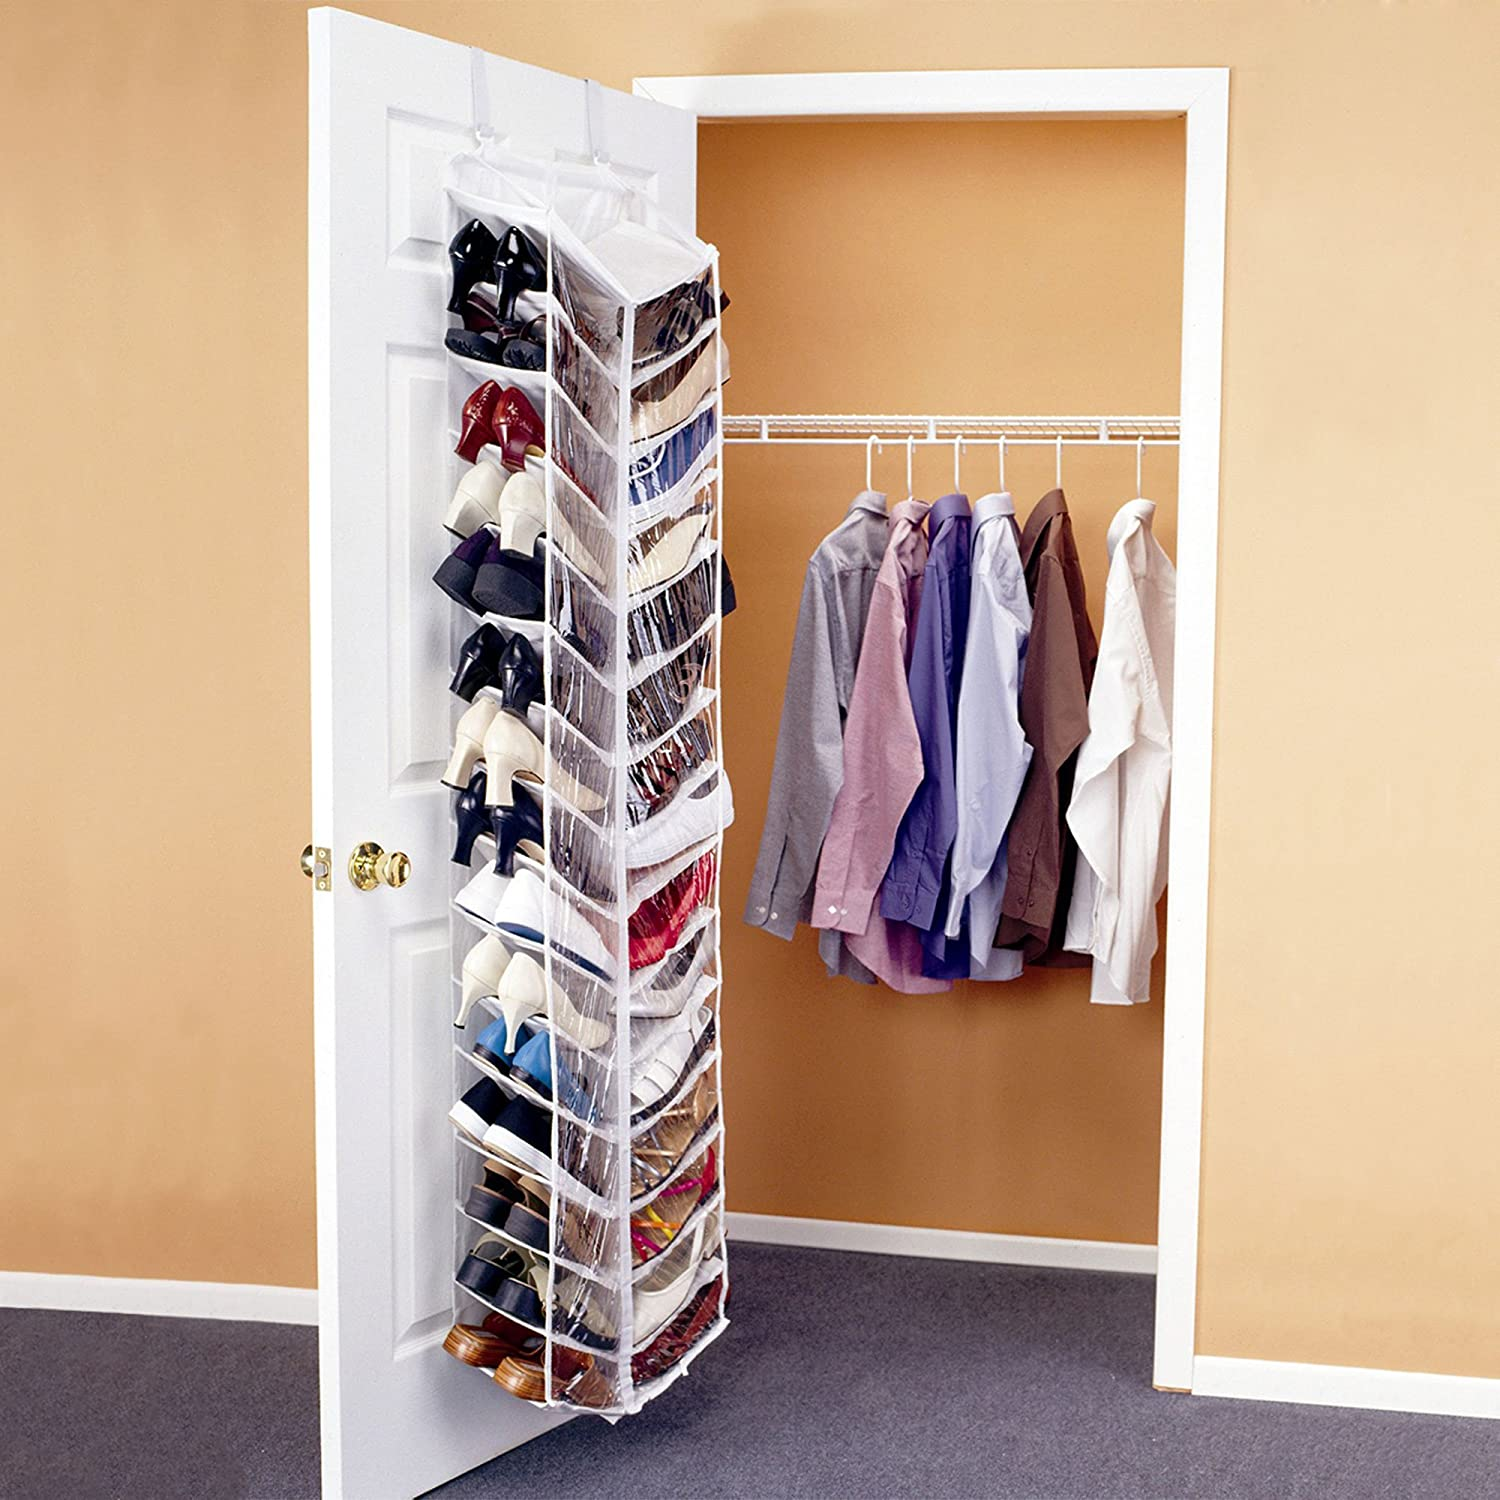 a closet hanging step space rooms tos hang install and rod how spaces storage diy to